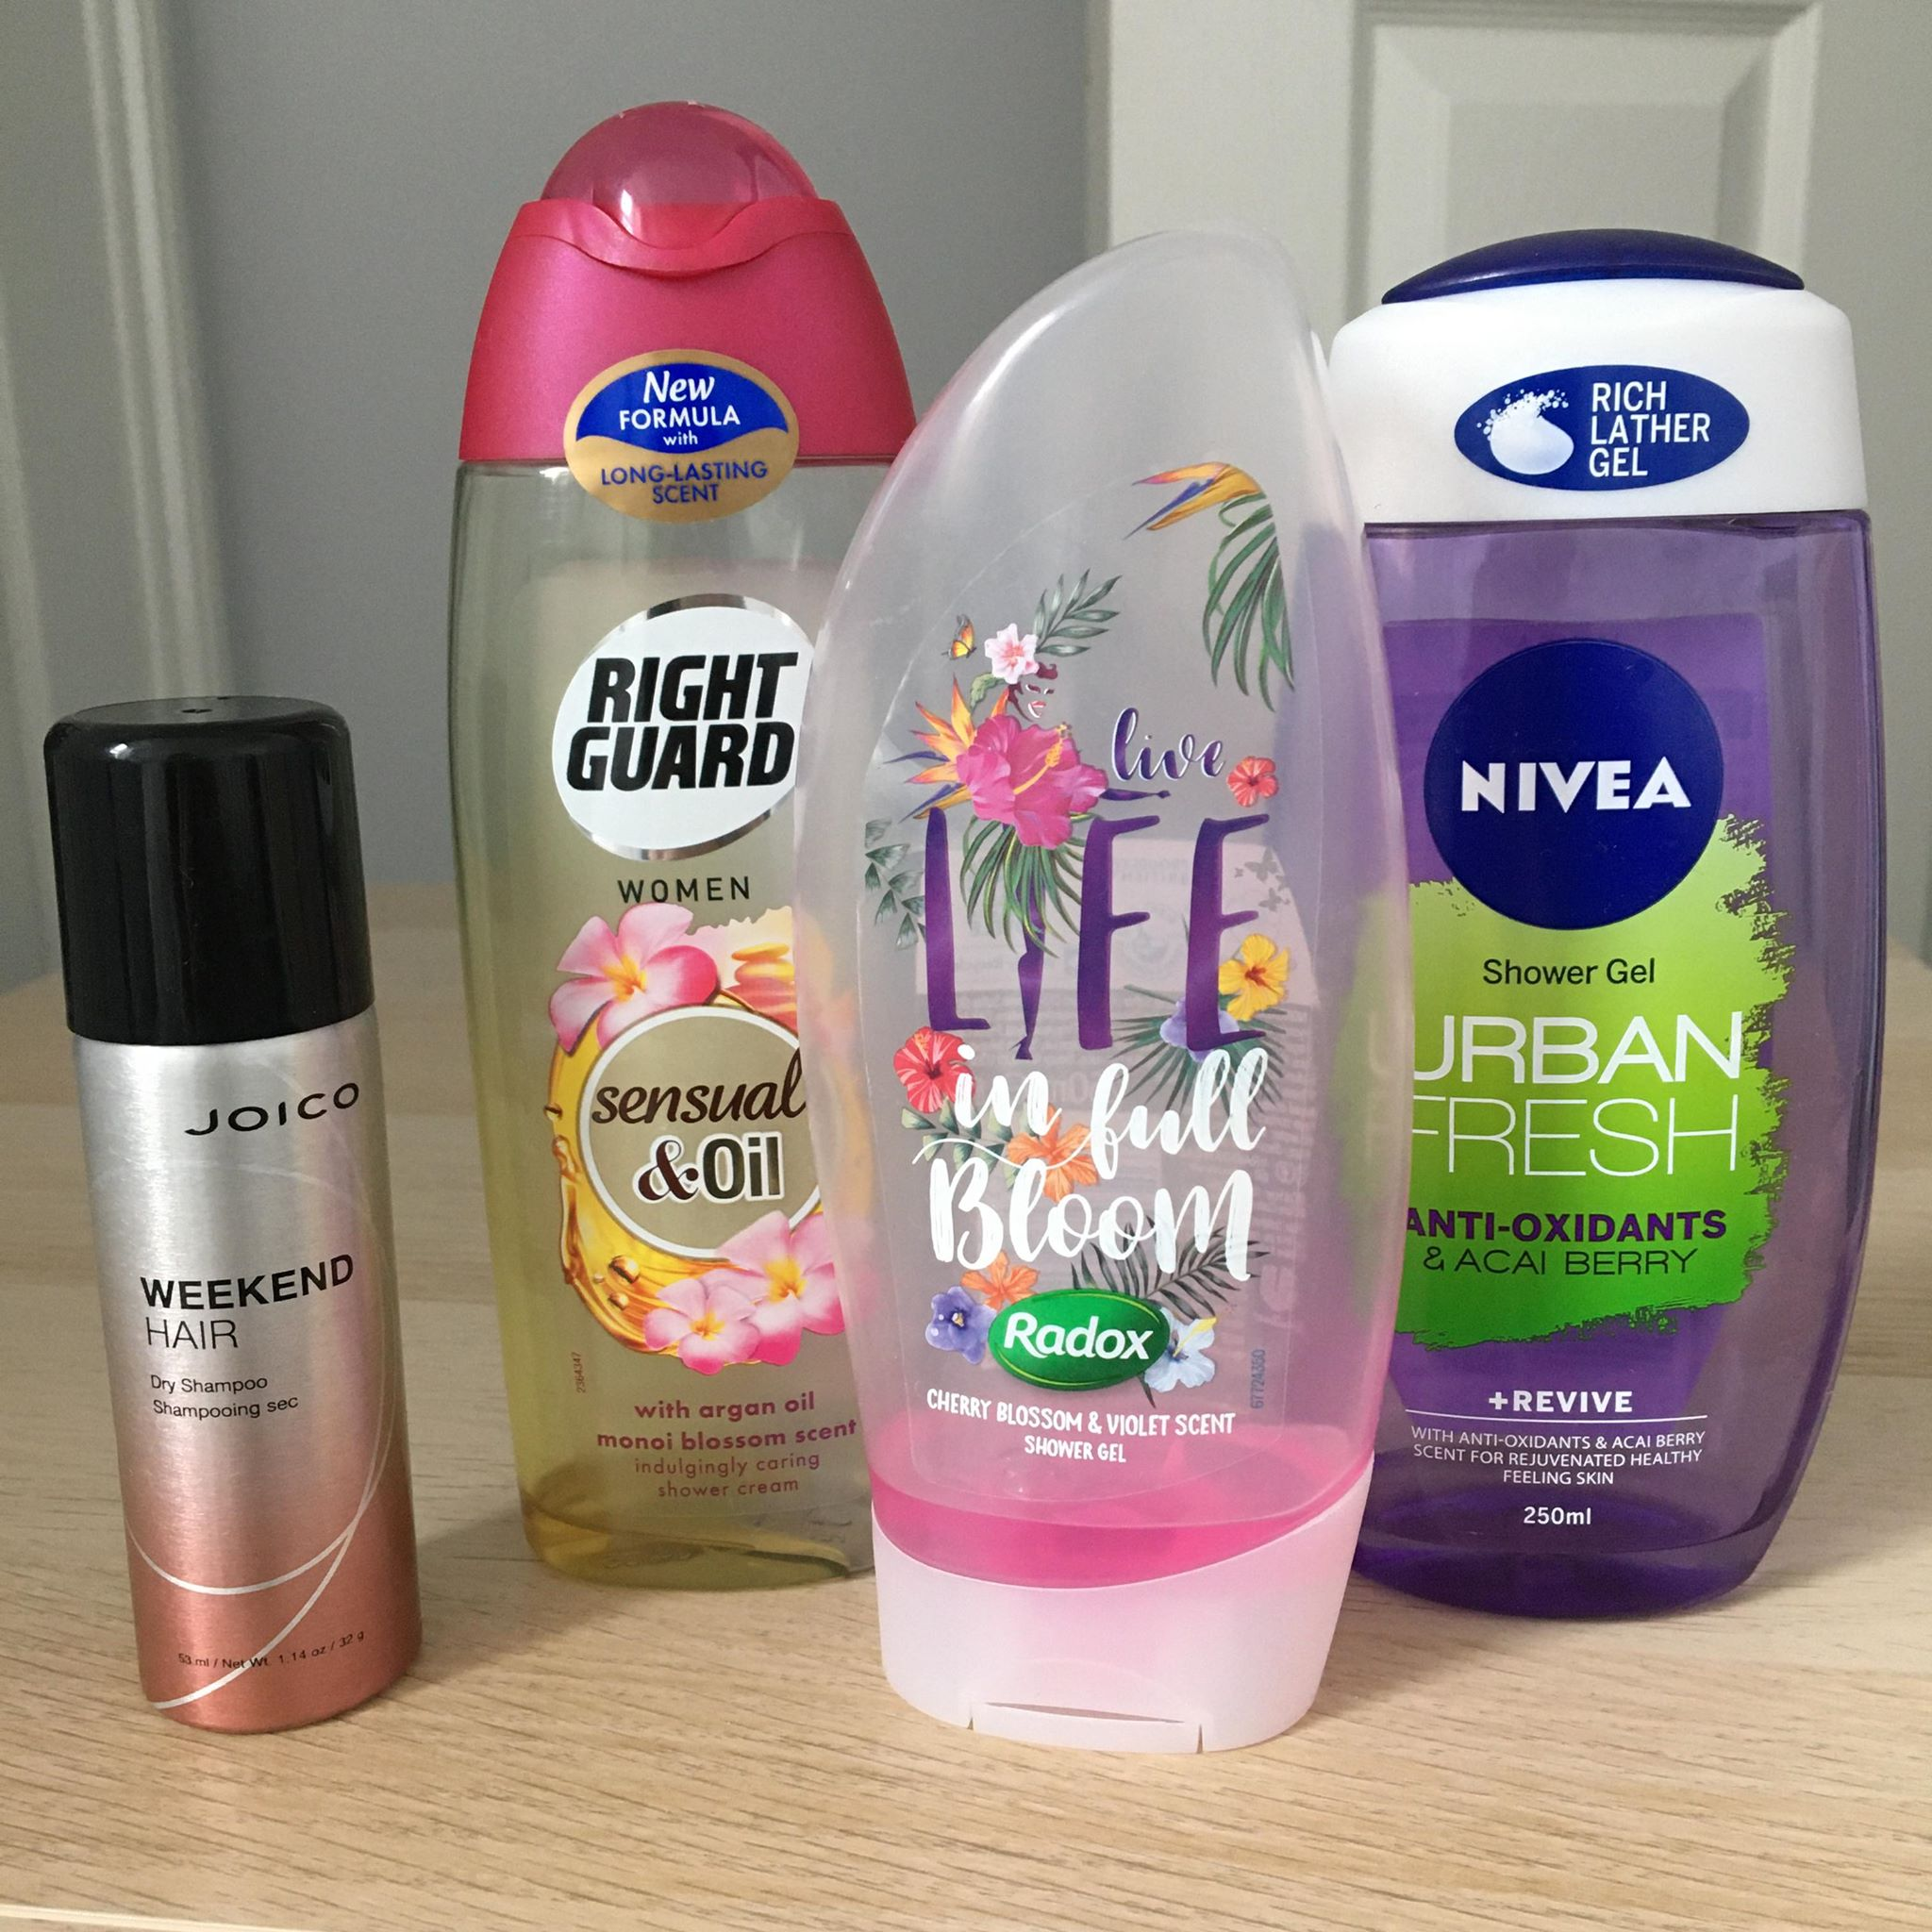 Joico Weekend Hair, Right guard shower gel, Radox shower gel, Nivea shower gel - Empties